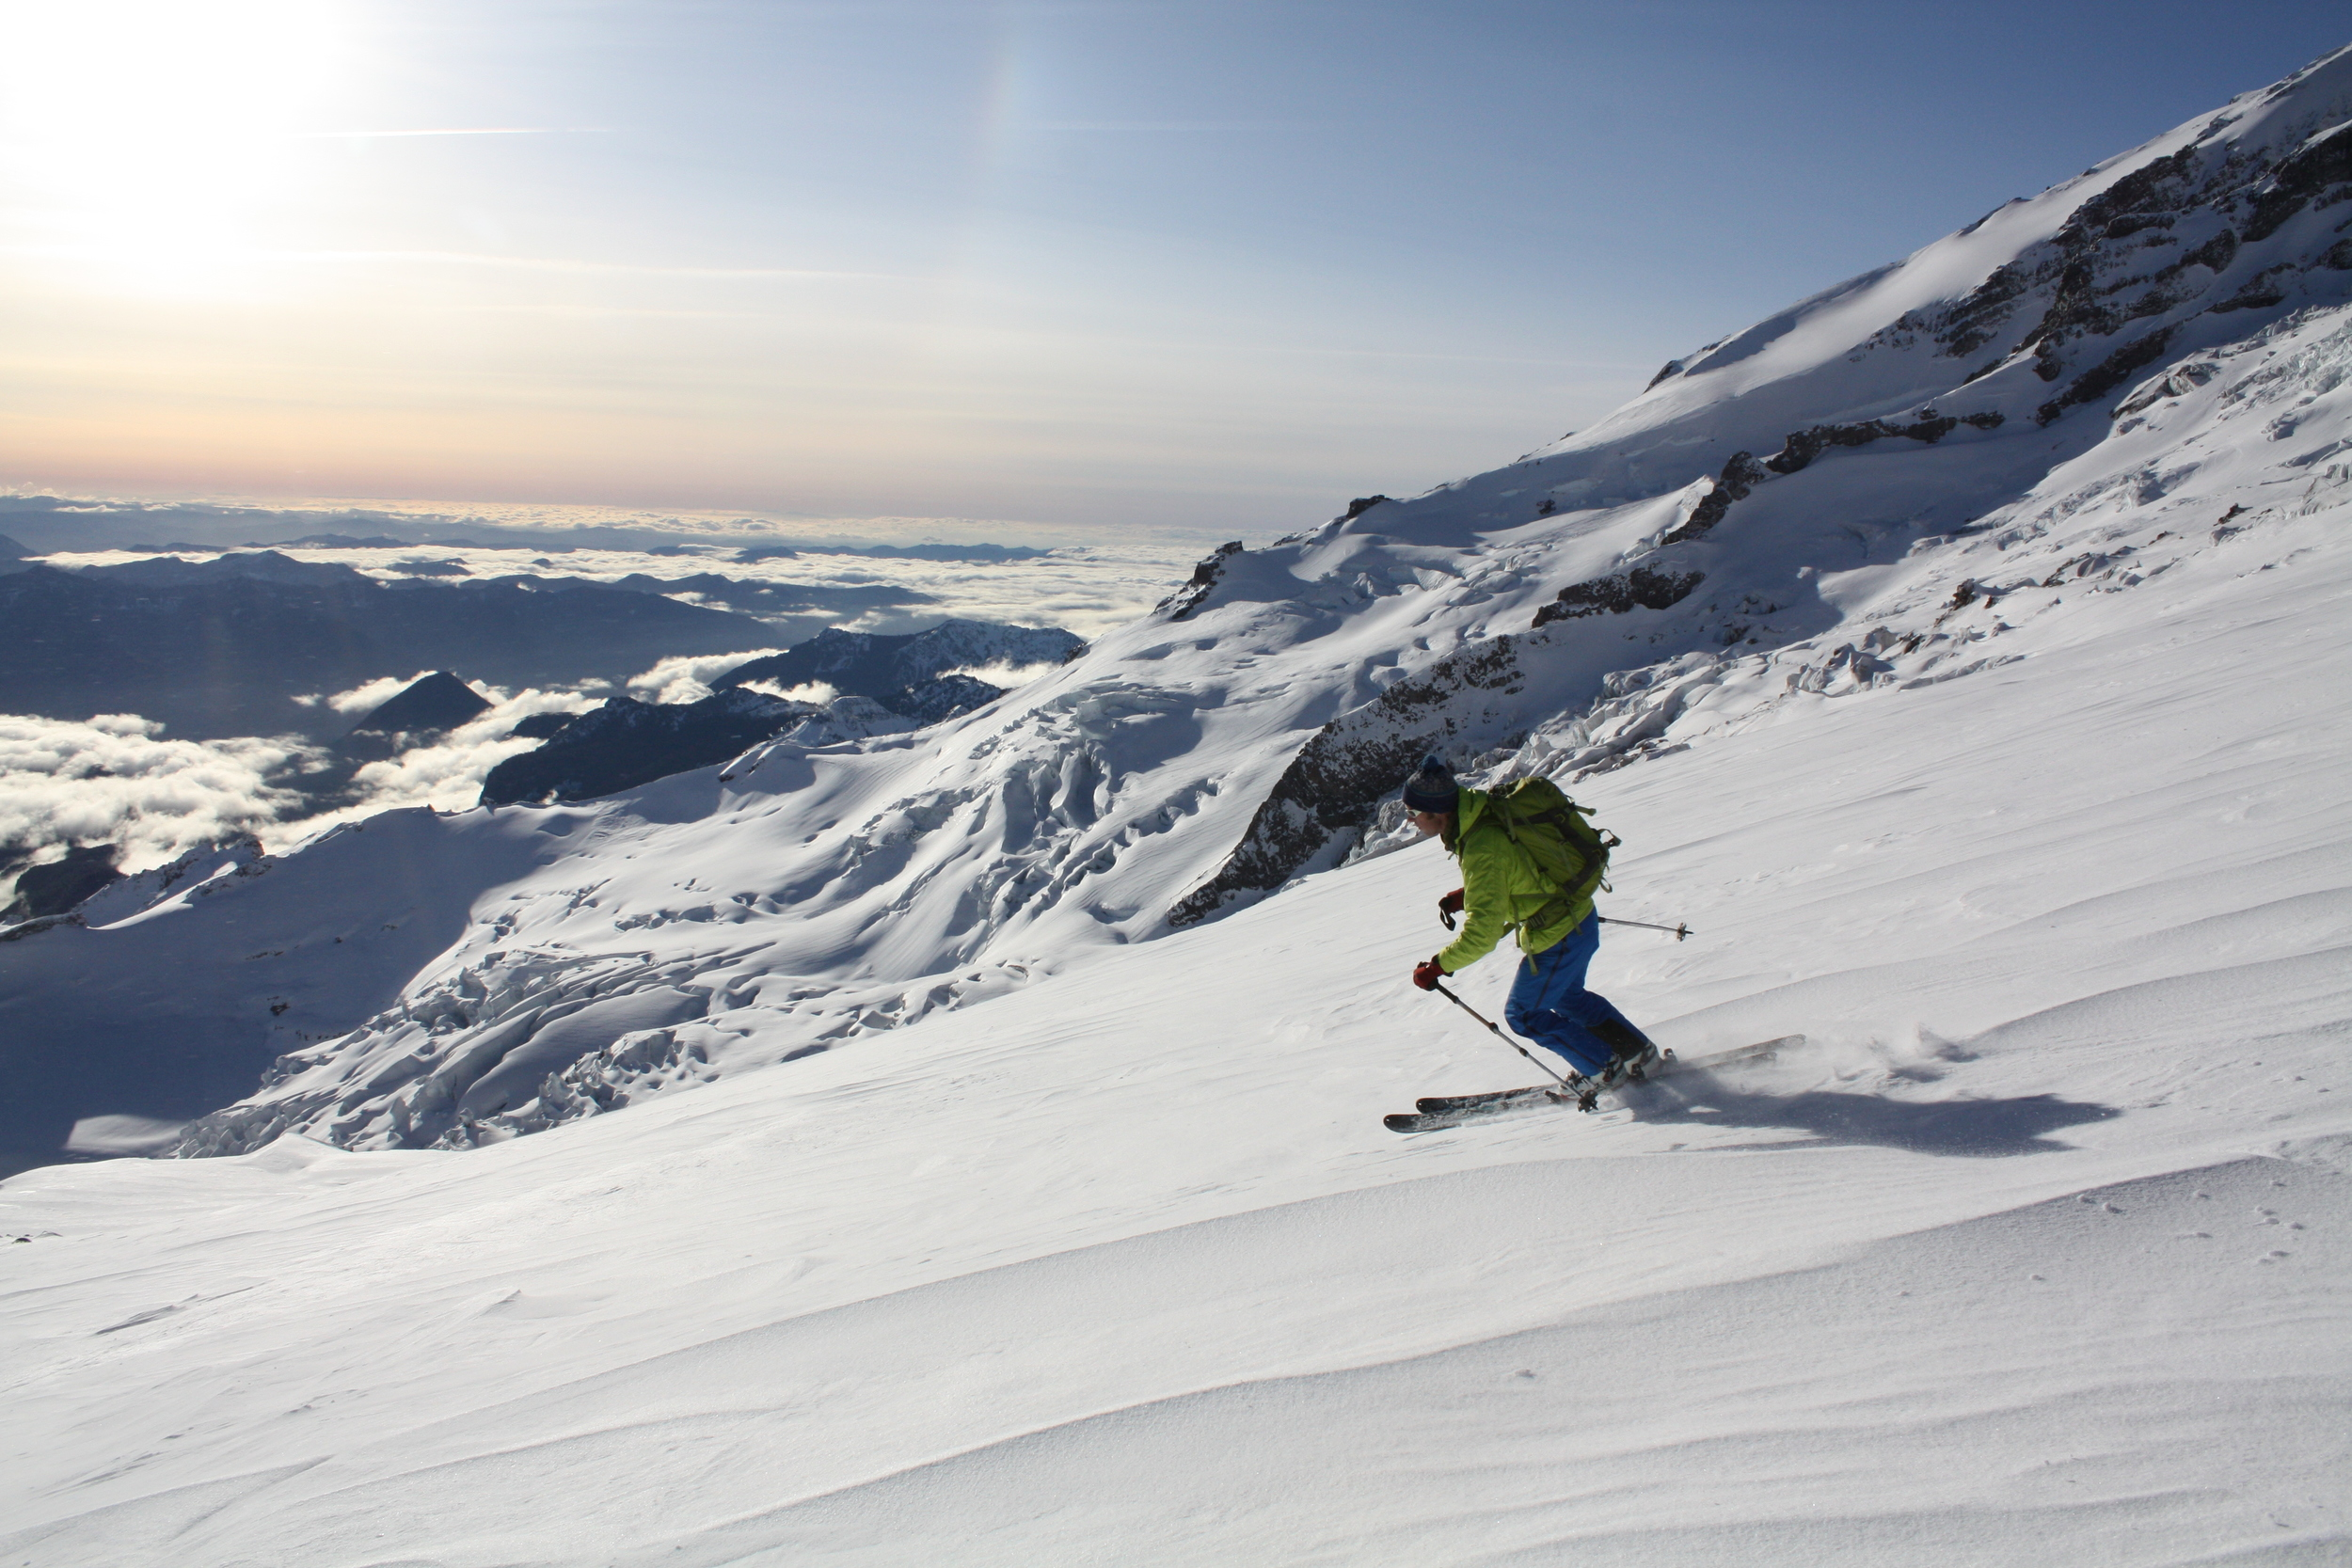 Forest McBrian skiing on the Muir snowfield.